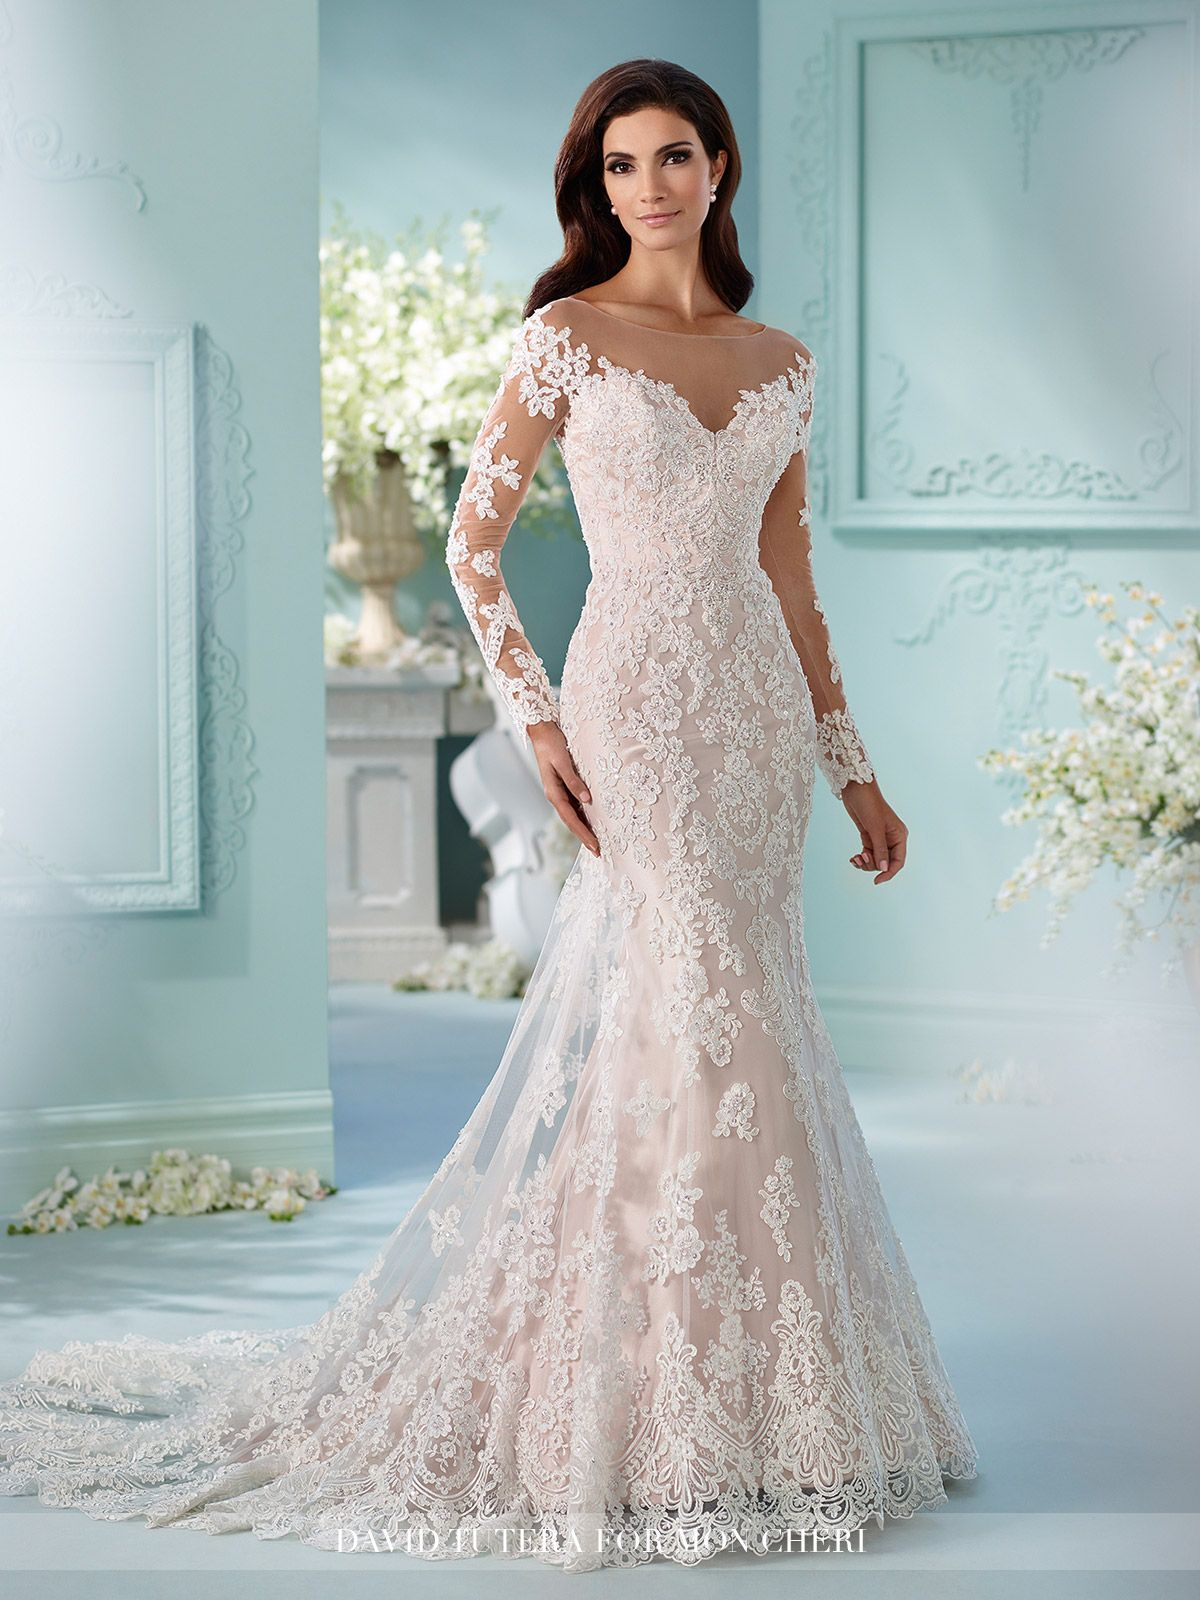 Wedding Dresses Kearney Ne : Long sleeve sweep train wedding dress maisie